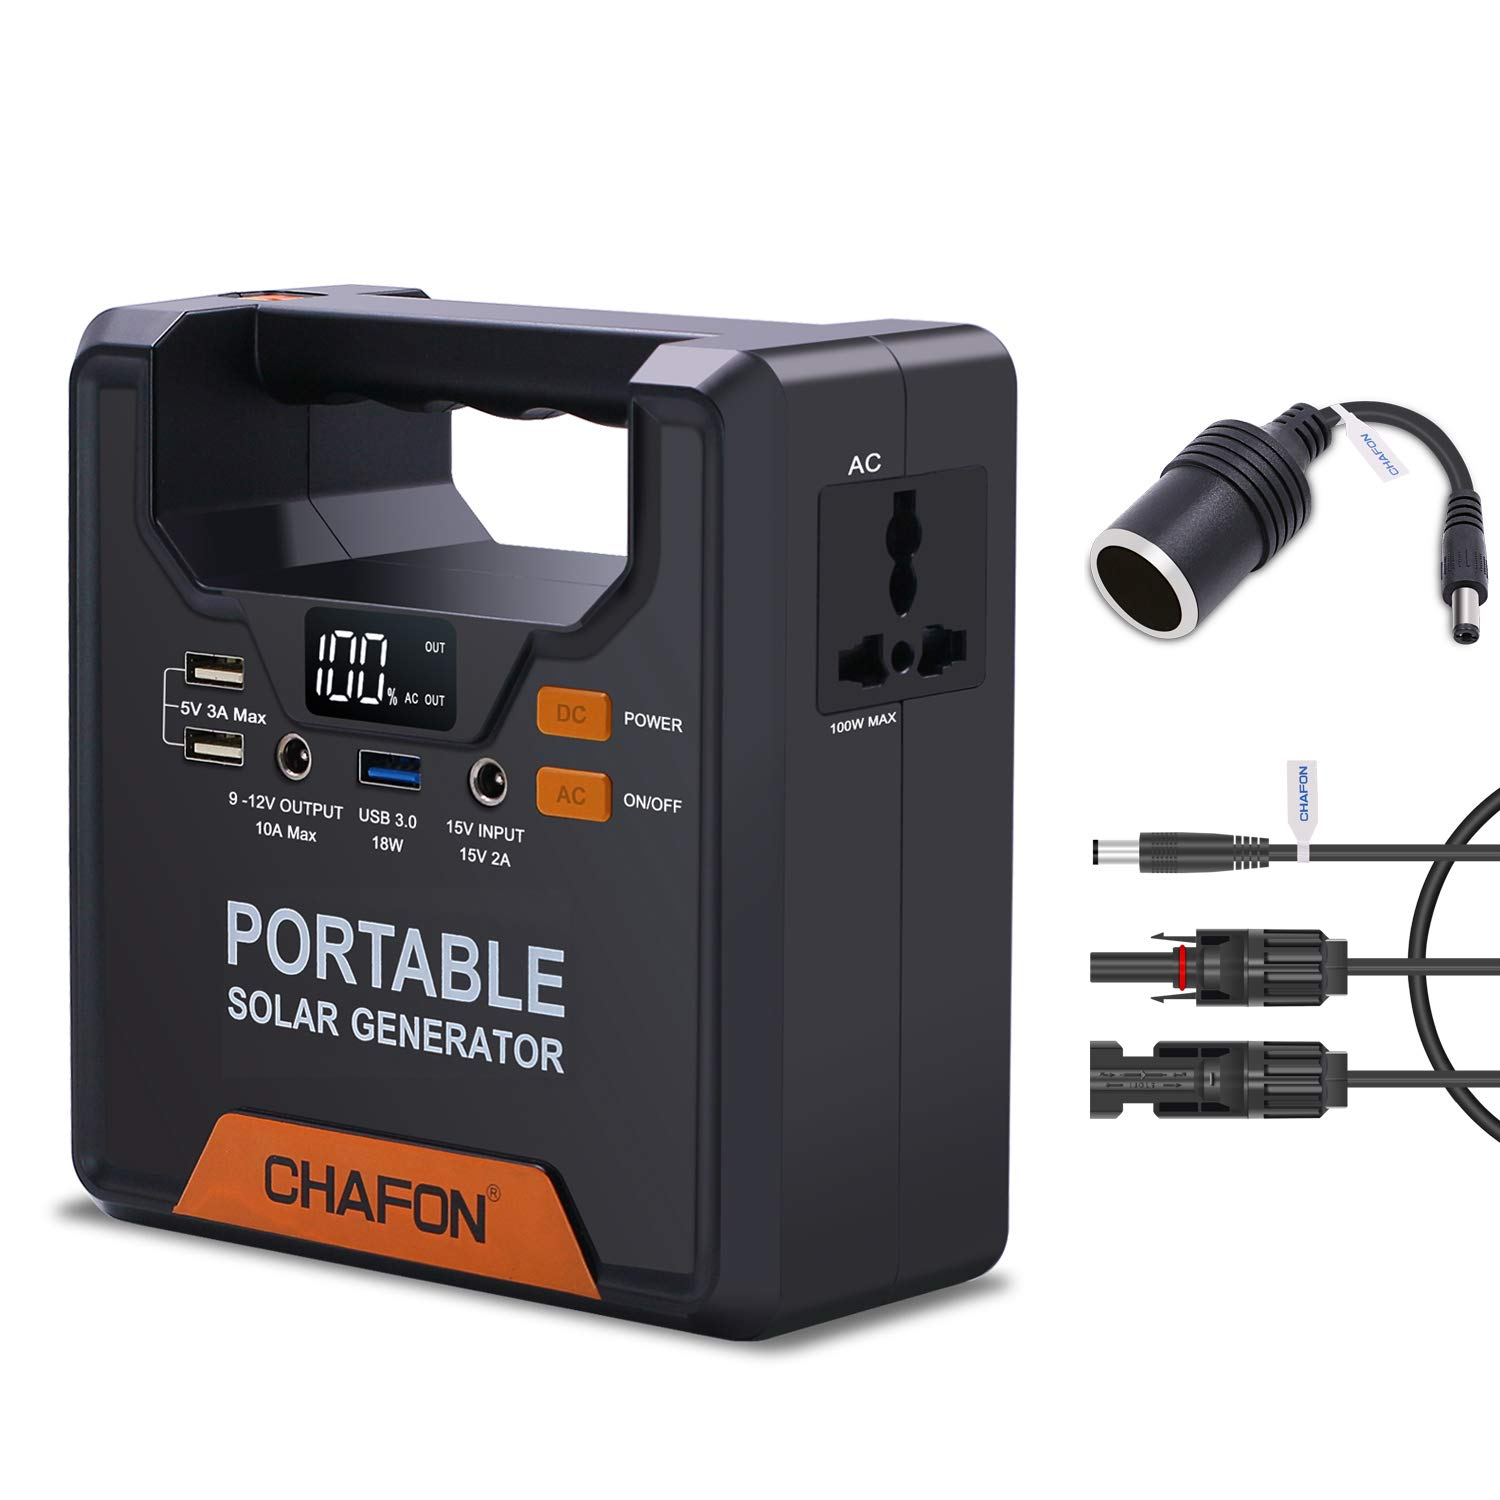 133WH Portable Generator Power Supply Home Emergency Power Station CPAP Battery Backup Pack with 110V/ 100W AC inverter Outlet for Outdoor Camping Hunting Travel